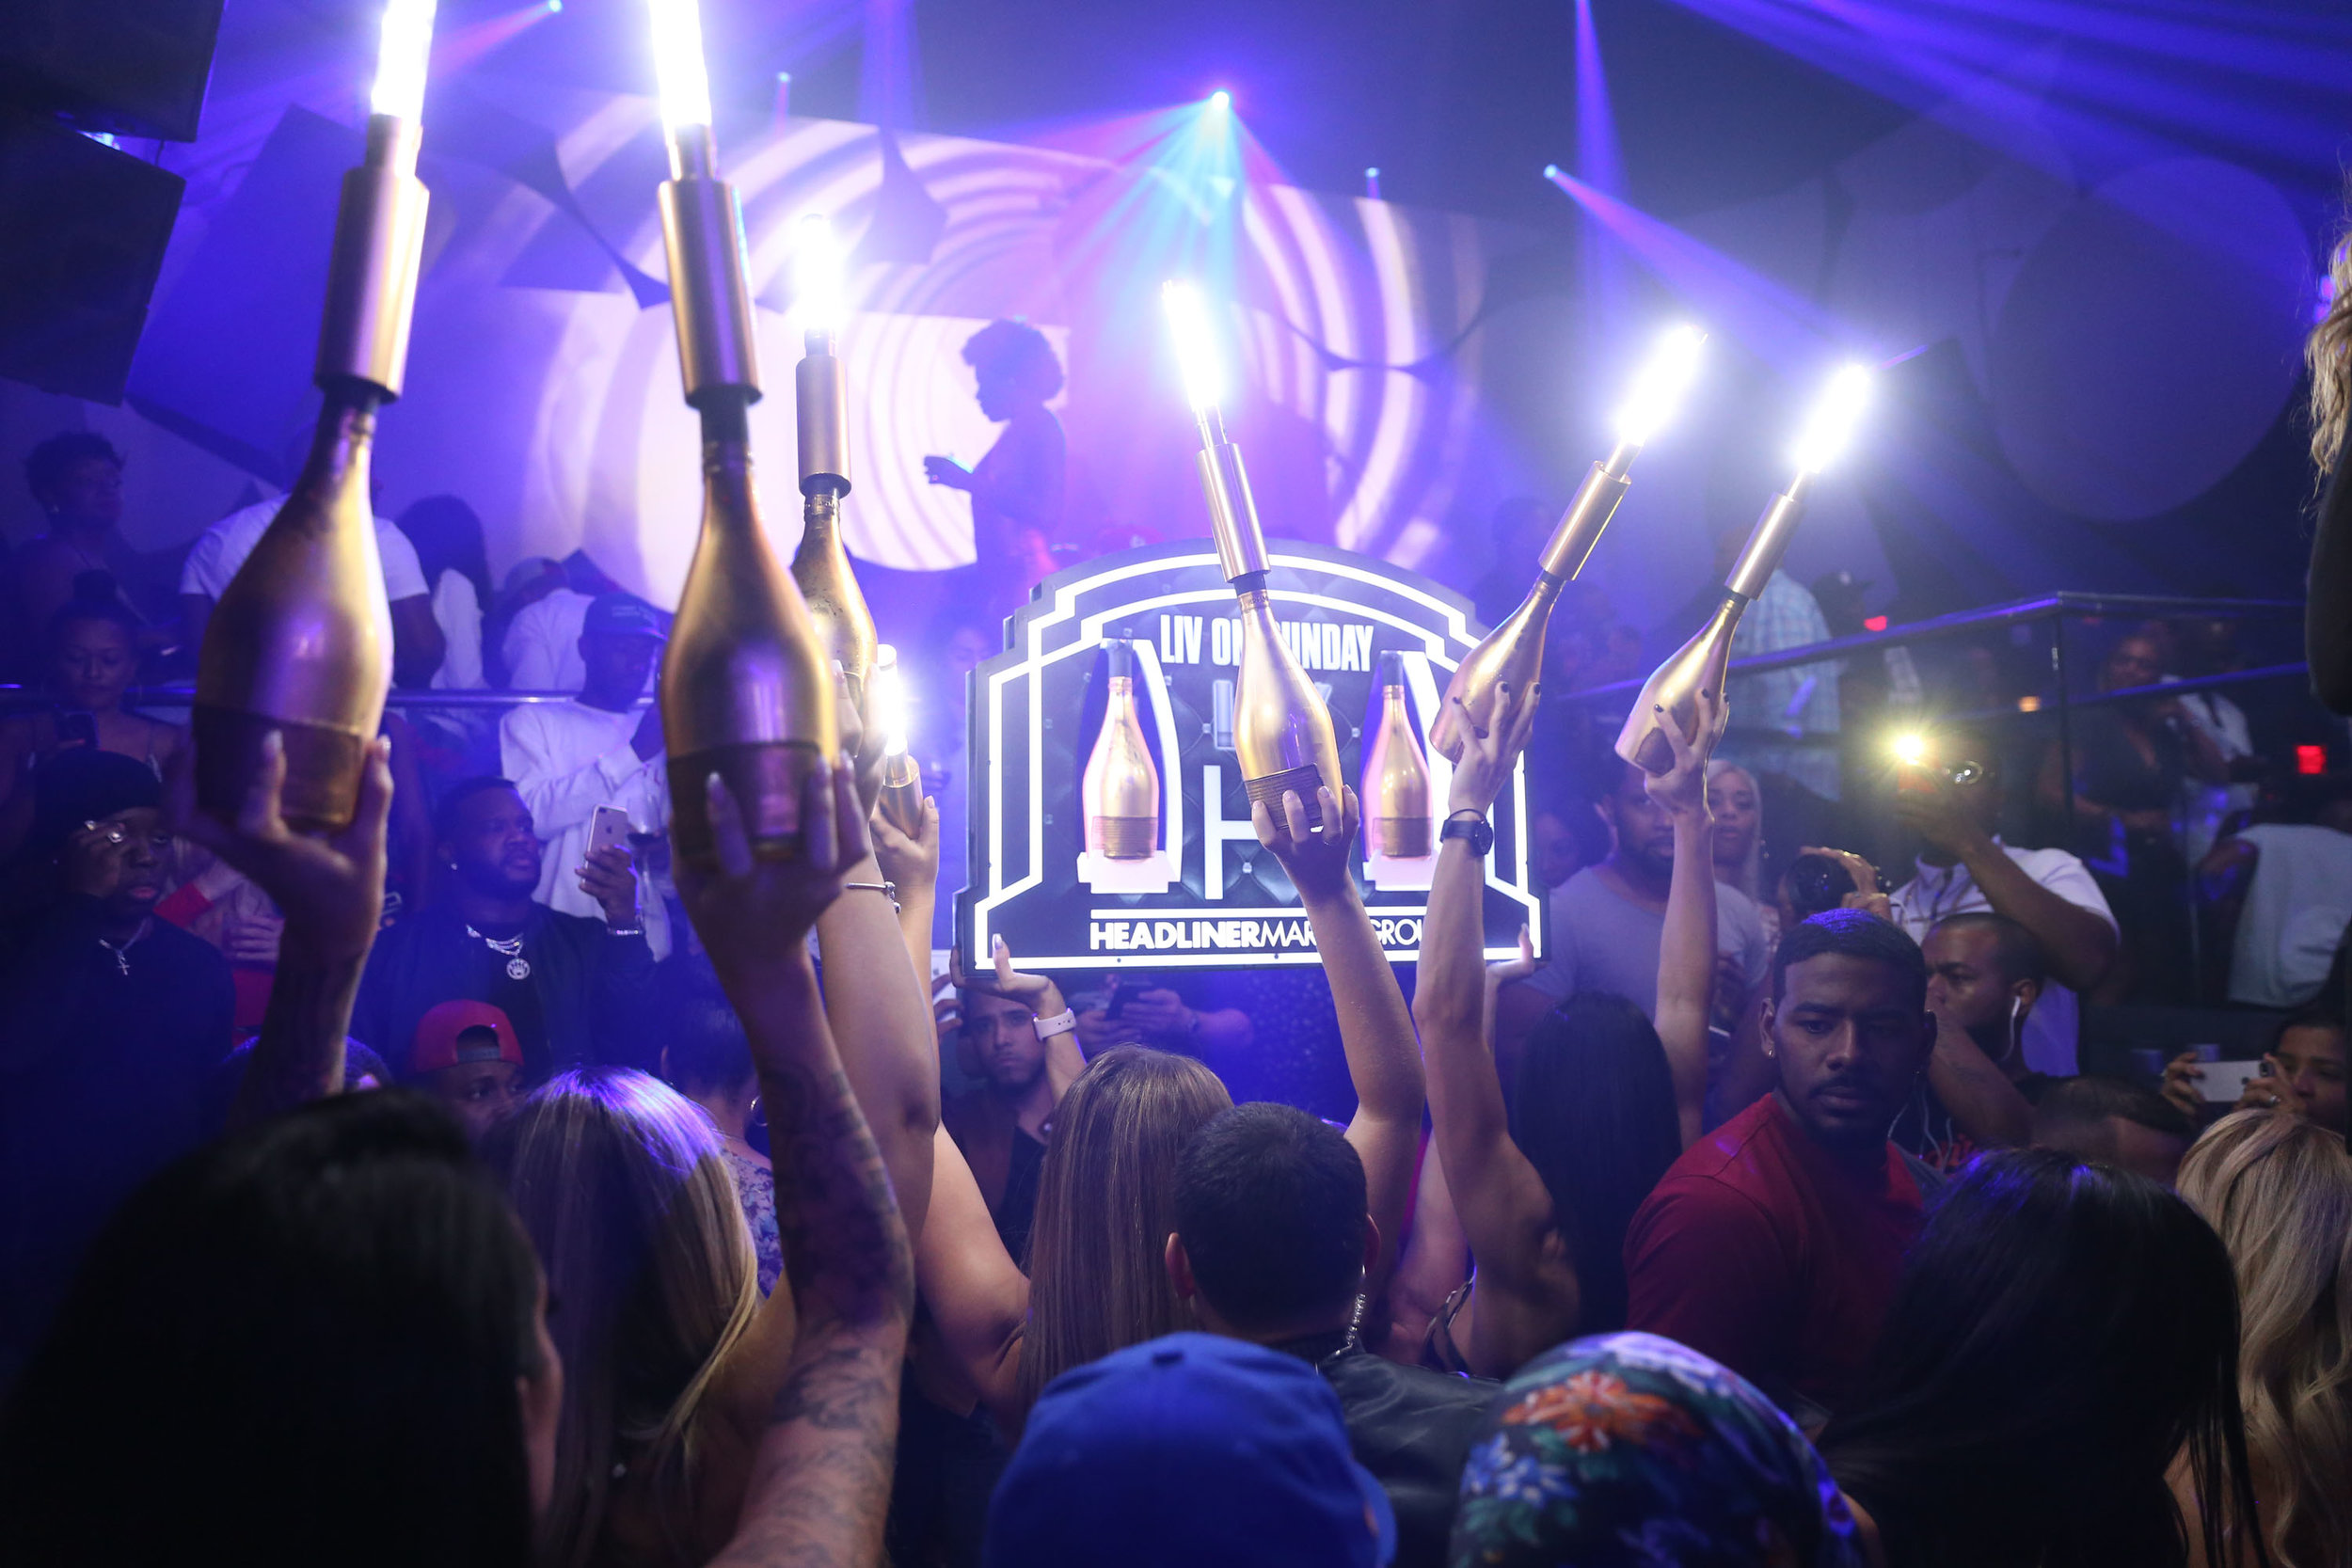 Celeb Sightings: LIV Reopens With DJ Khaled, Jeezy And More